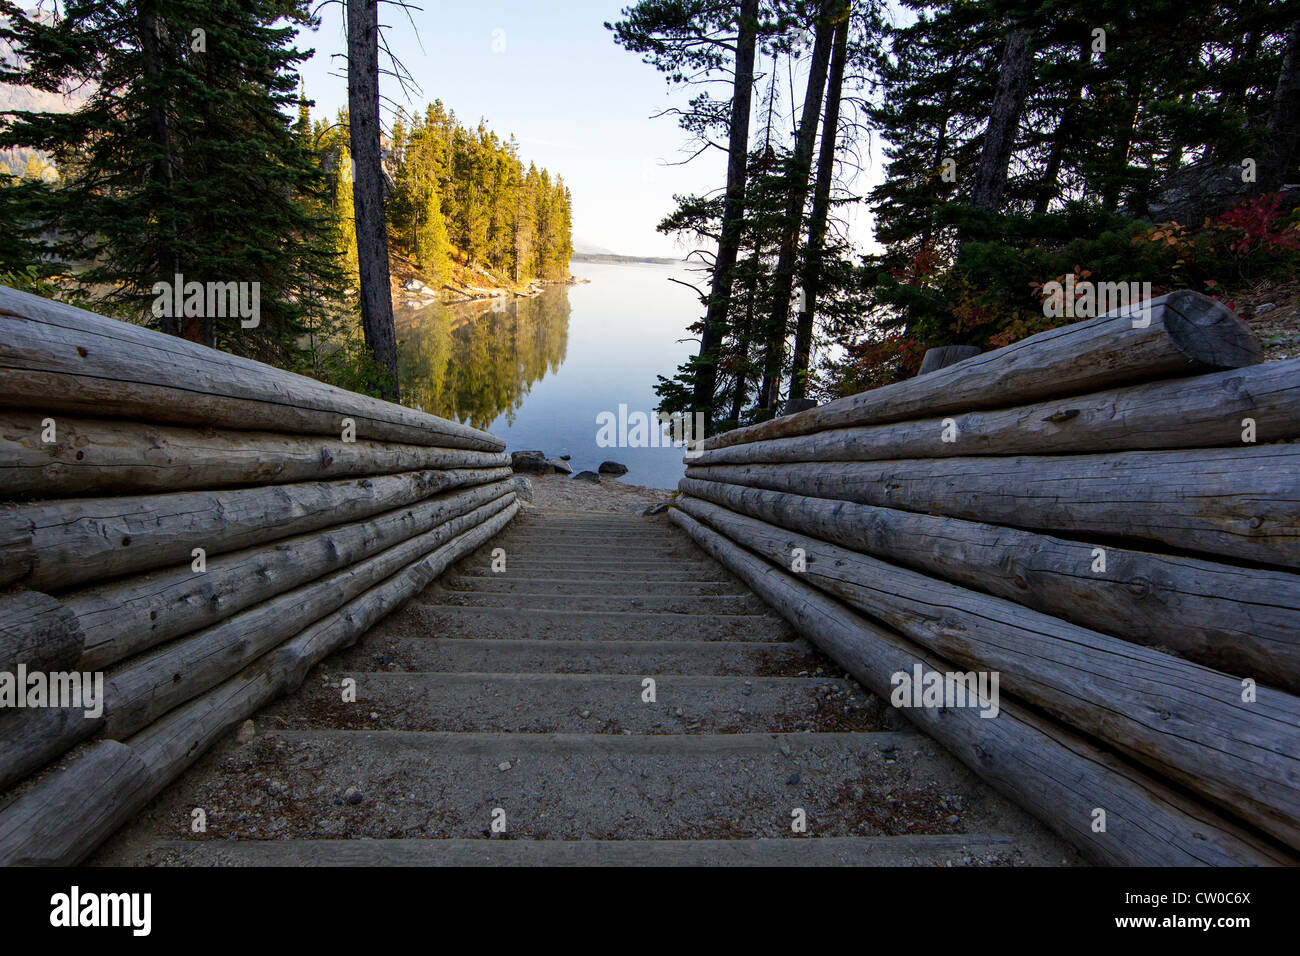 Looking down the portage ramp to Leigh Lake, in Grand Teton National Park, Wyoming. Stock Photo